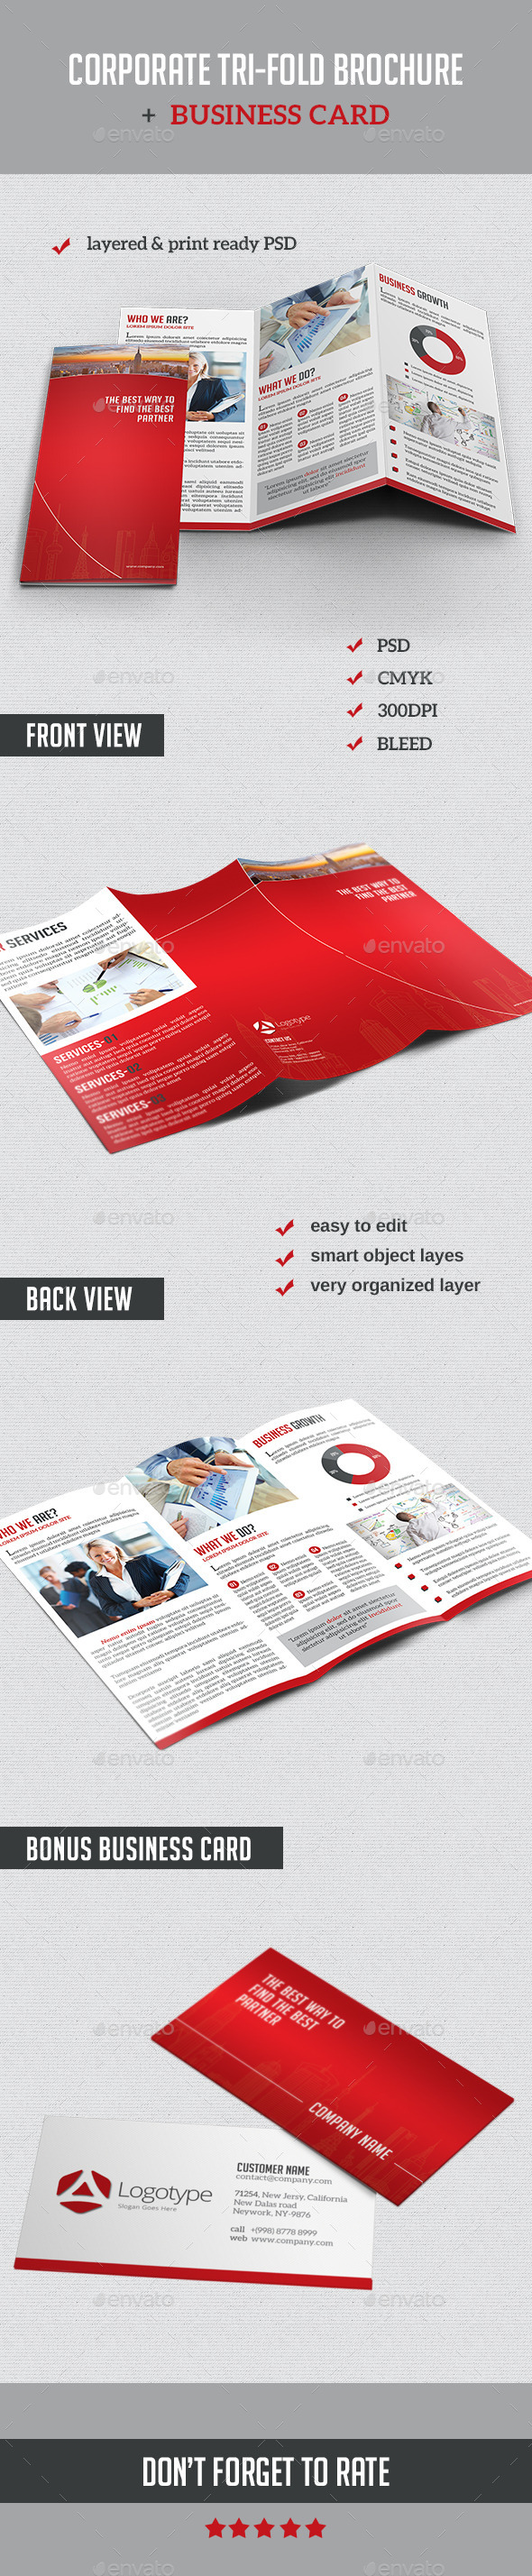 GraphicRiver Corporate Tri-Fold Brochure & Business Card 10483488